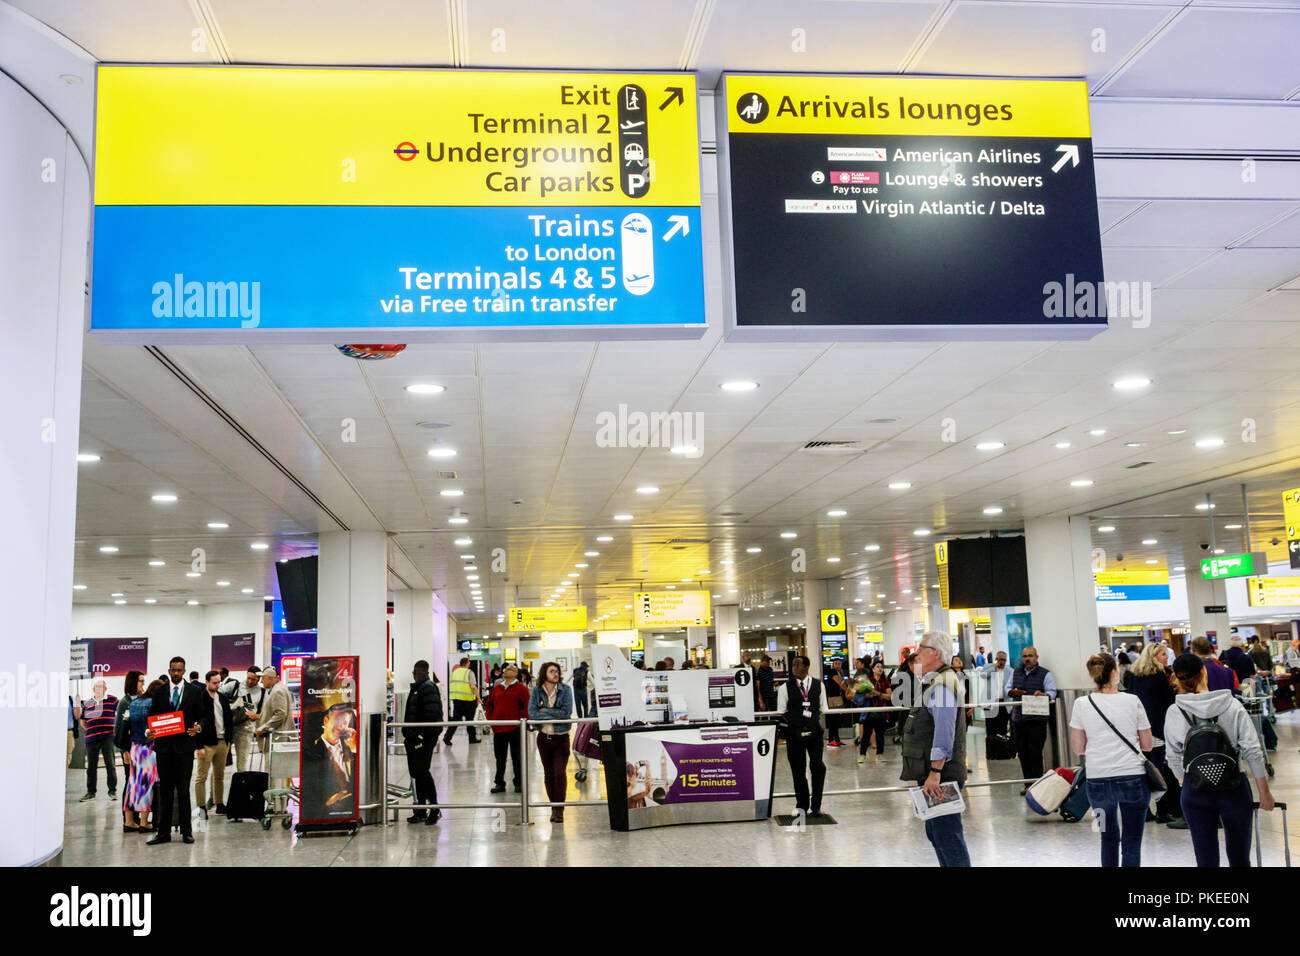 London England Great Britain United Kingdom Heathrow Airport LHR sign directions arrival lounges trains underground - Stock Image